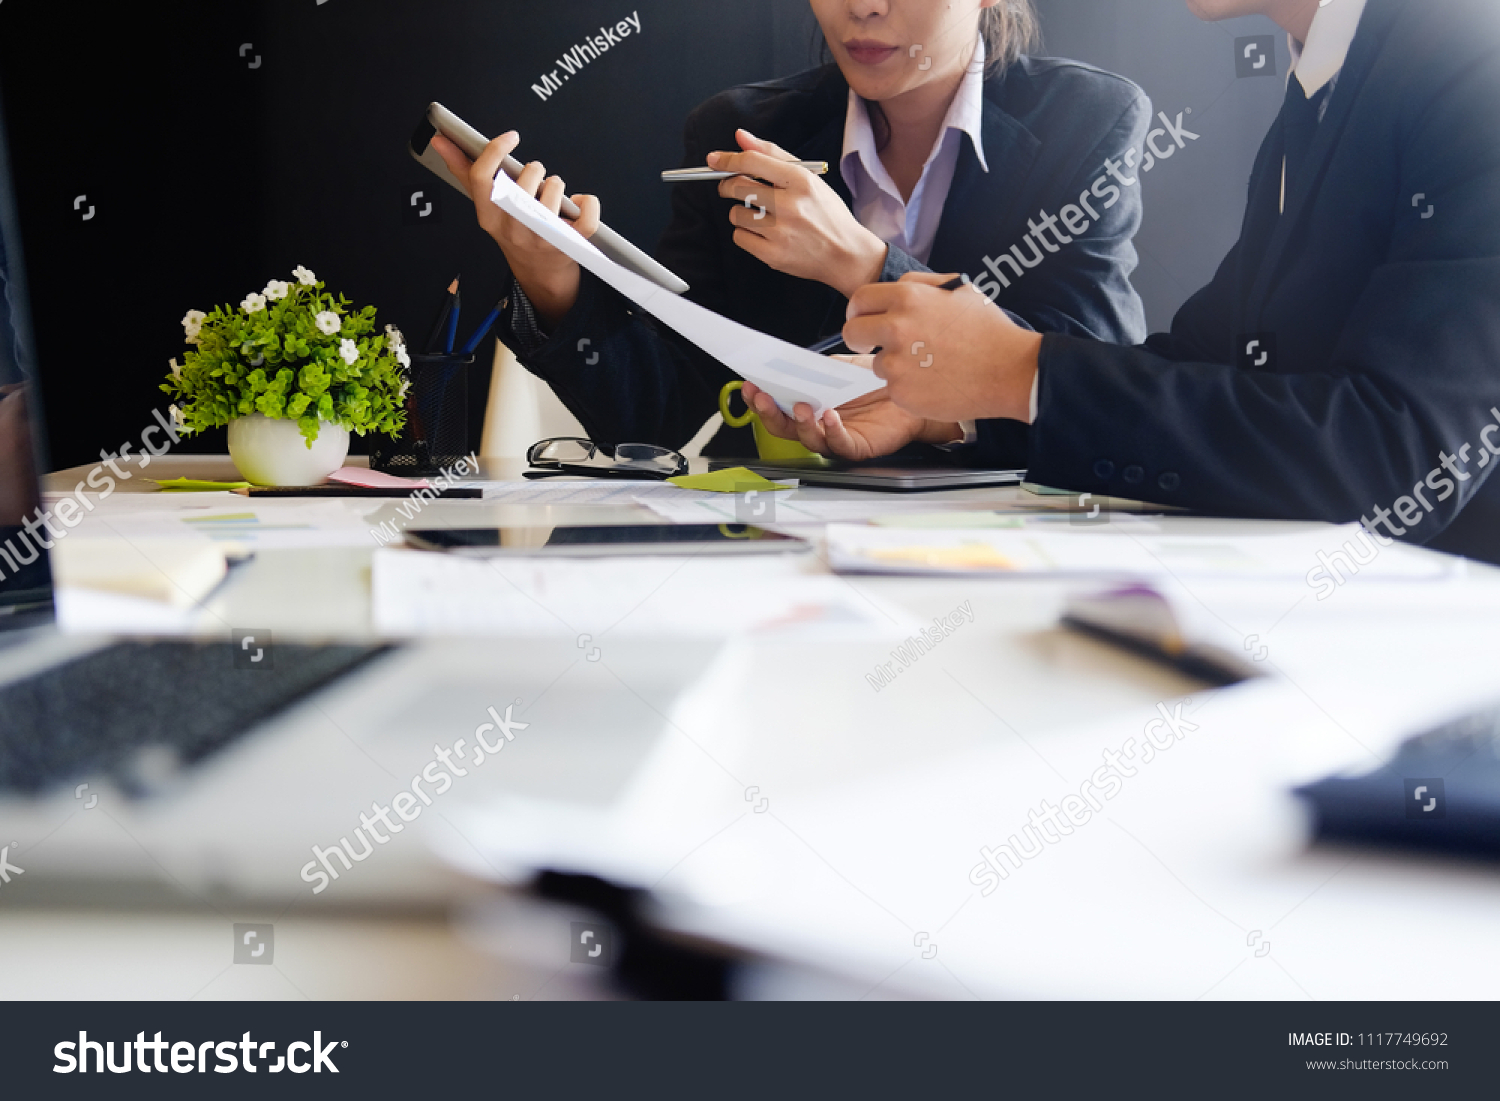 stock-photo-business-concept-audit-team-working-with-tablet-computer-and-paper-report-in-finance-office-1117749692